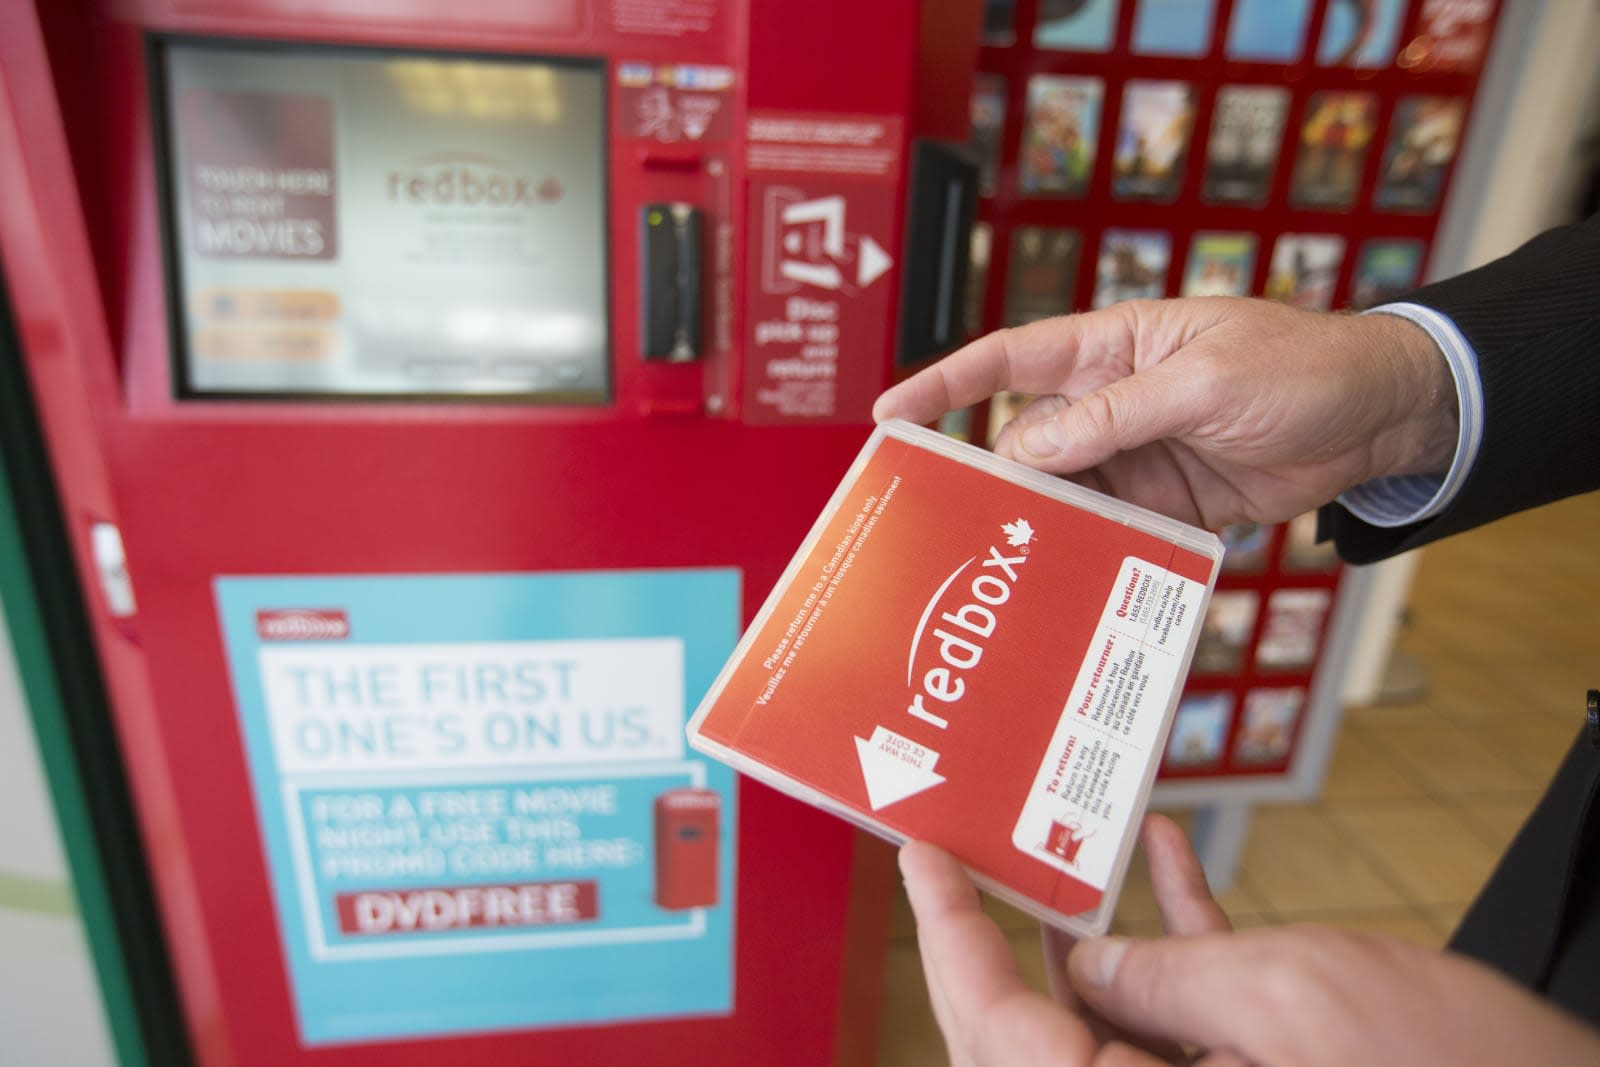 Disney's lawsuit against Redbox may have backfired